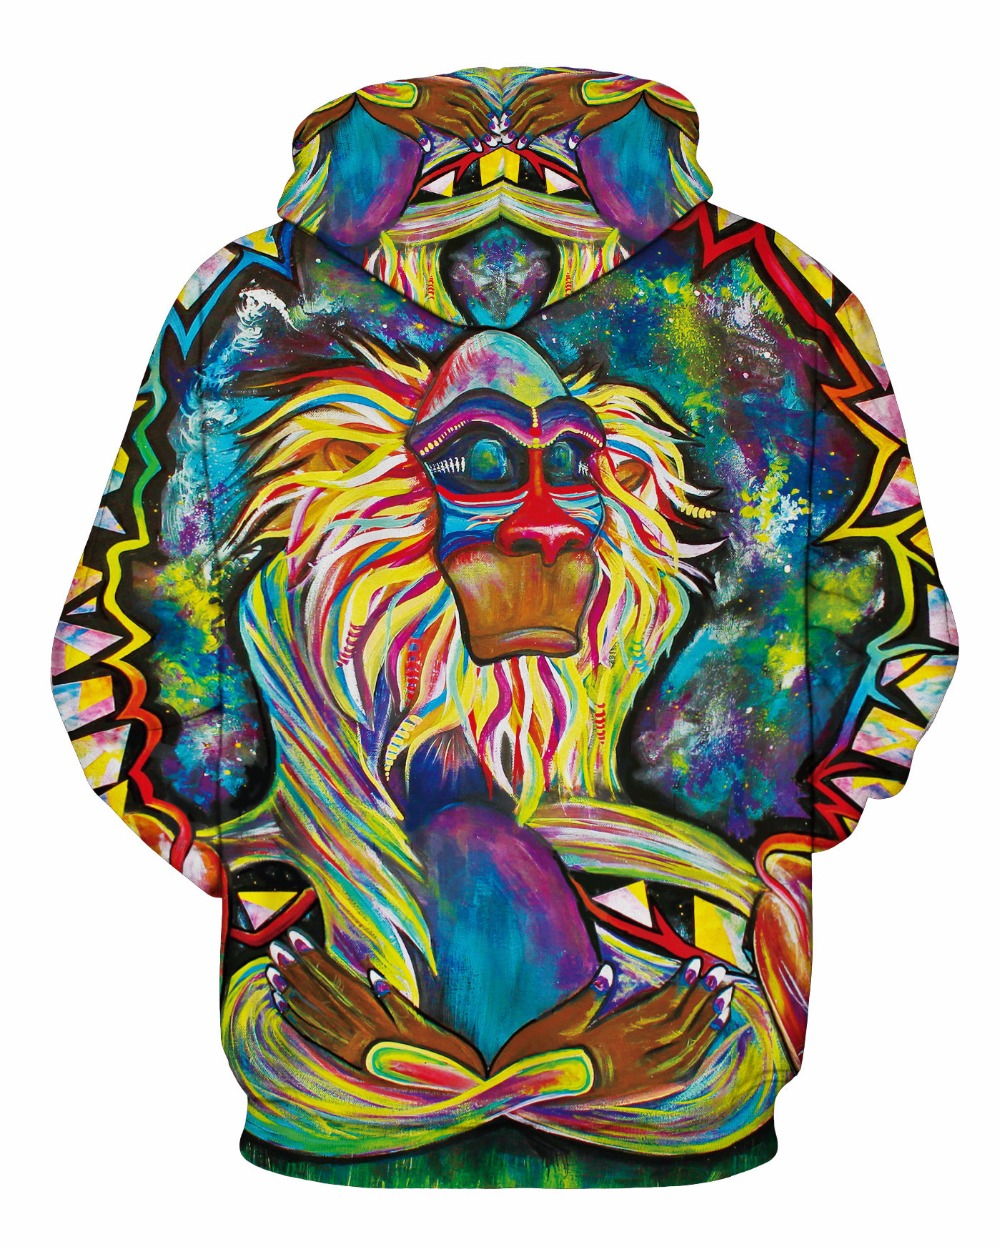 Wolf Printed Hoodies Men 3d Hoodies Brand Sweatshirts Boy Jackets Quality Pullover Fashion Tracksuits Animal Streetwear Out Coat 55